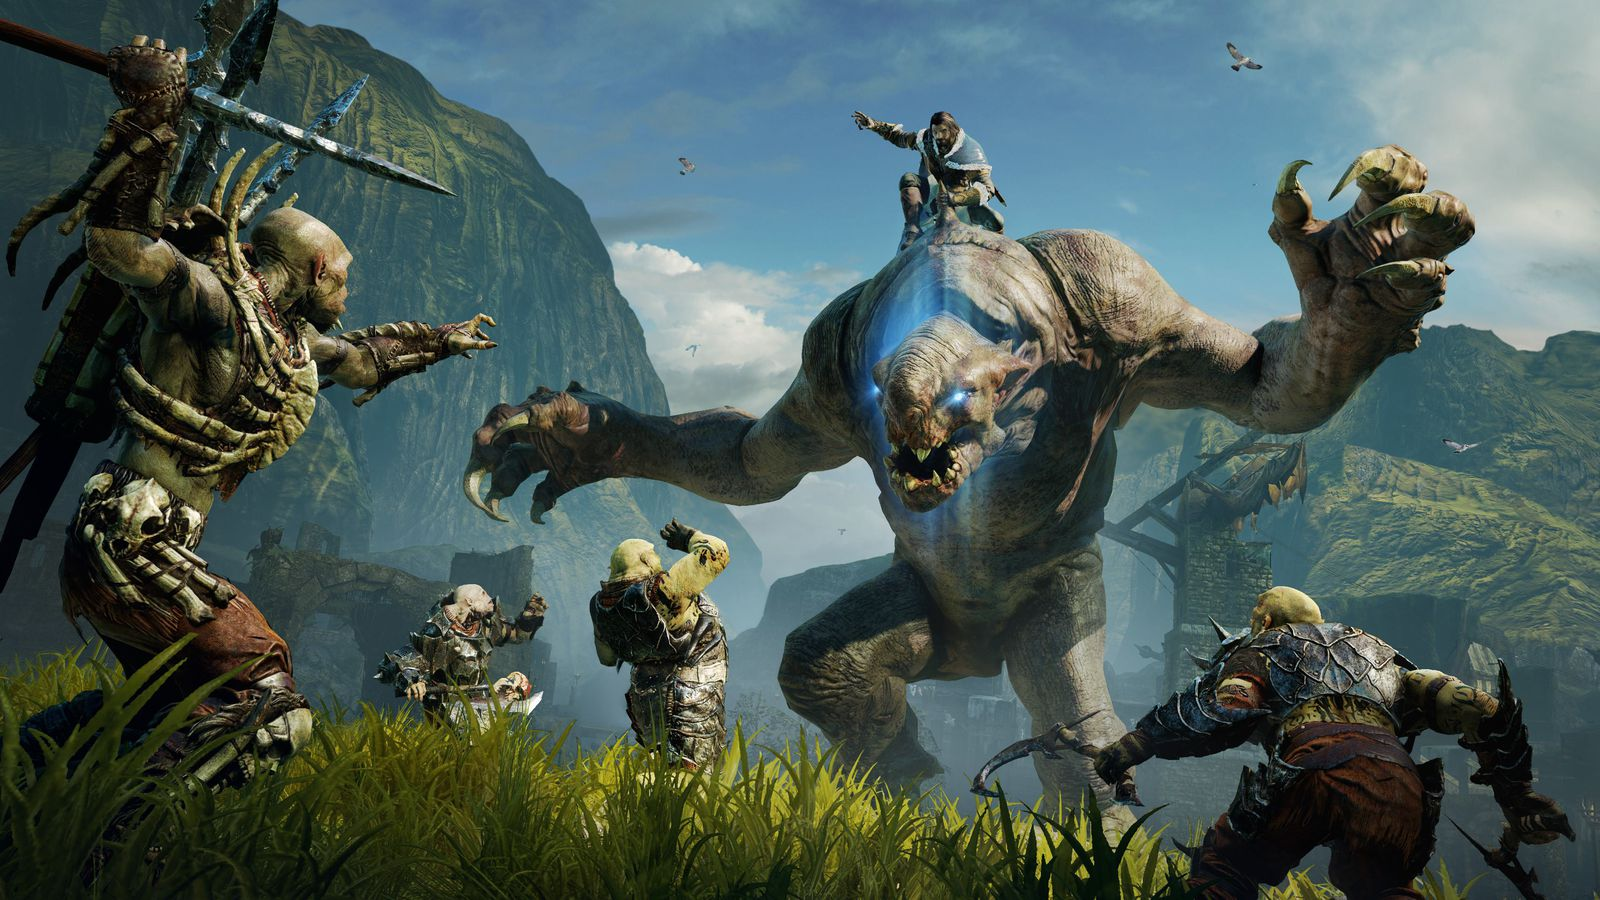 shadow of mordor hd full movie free download